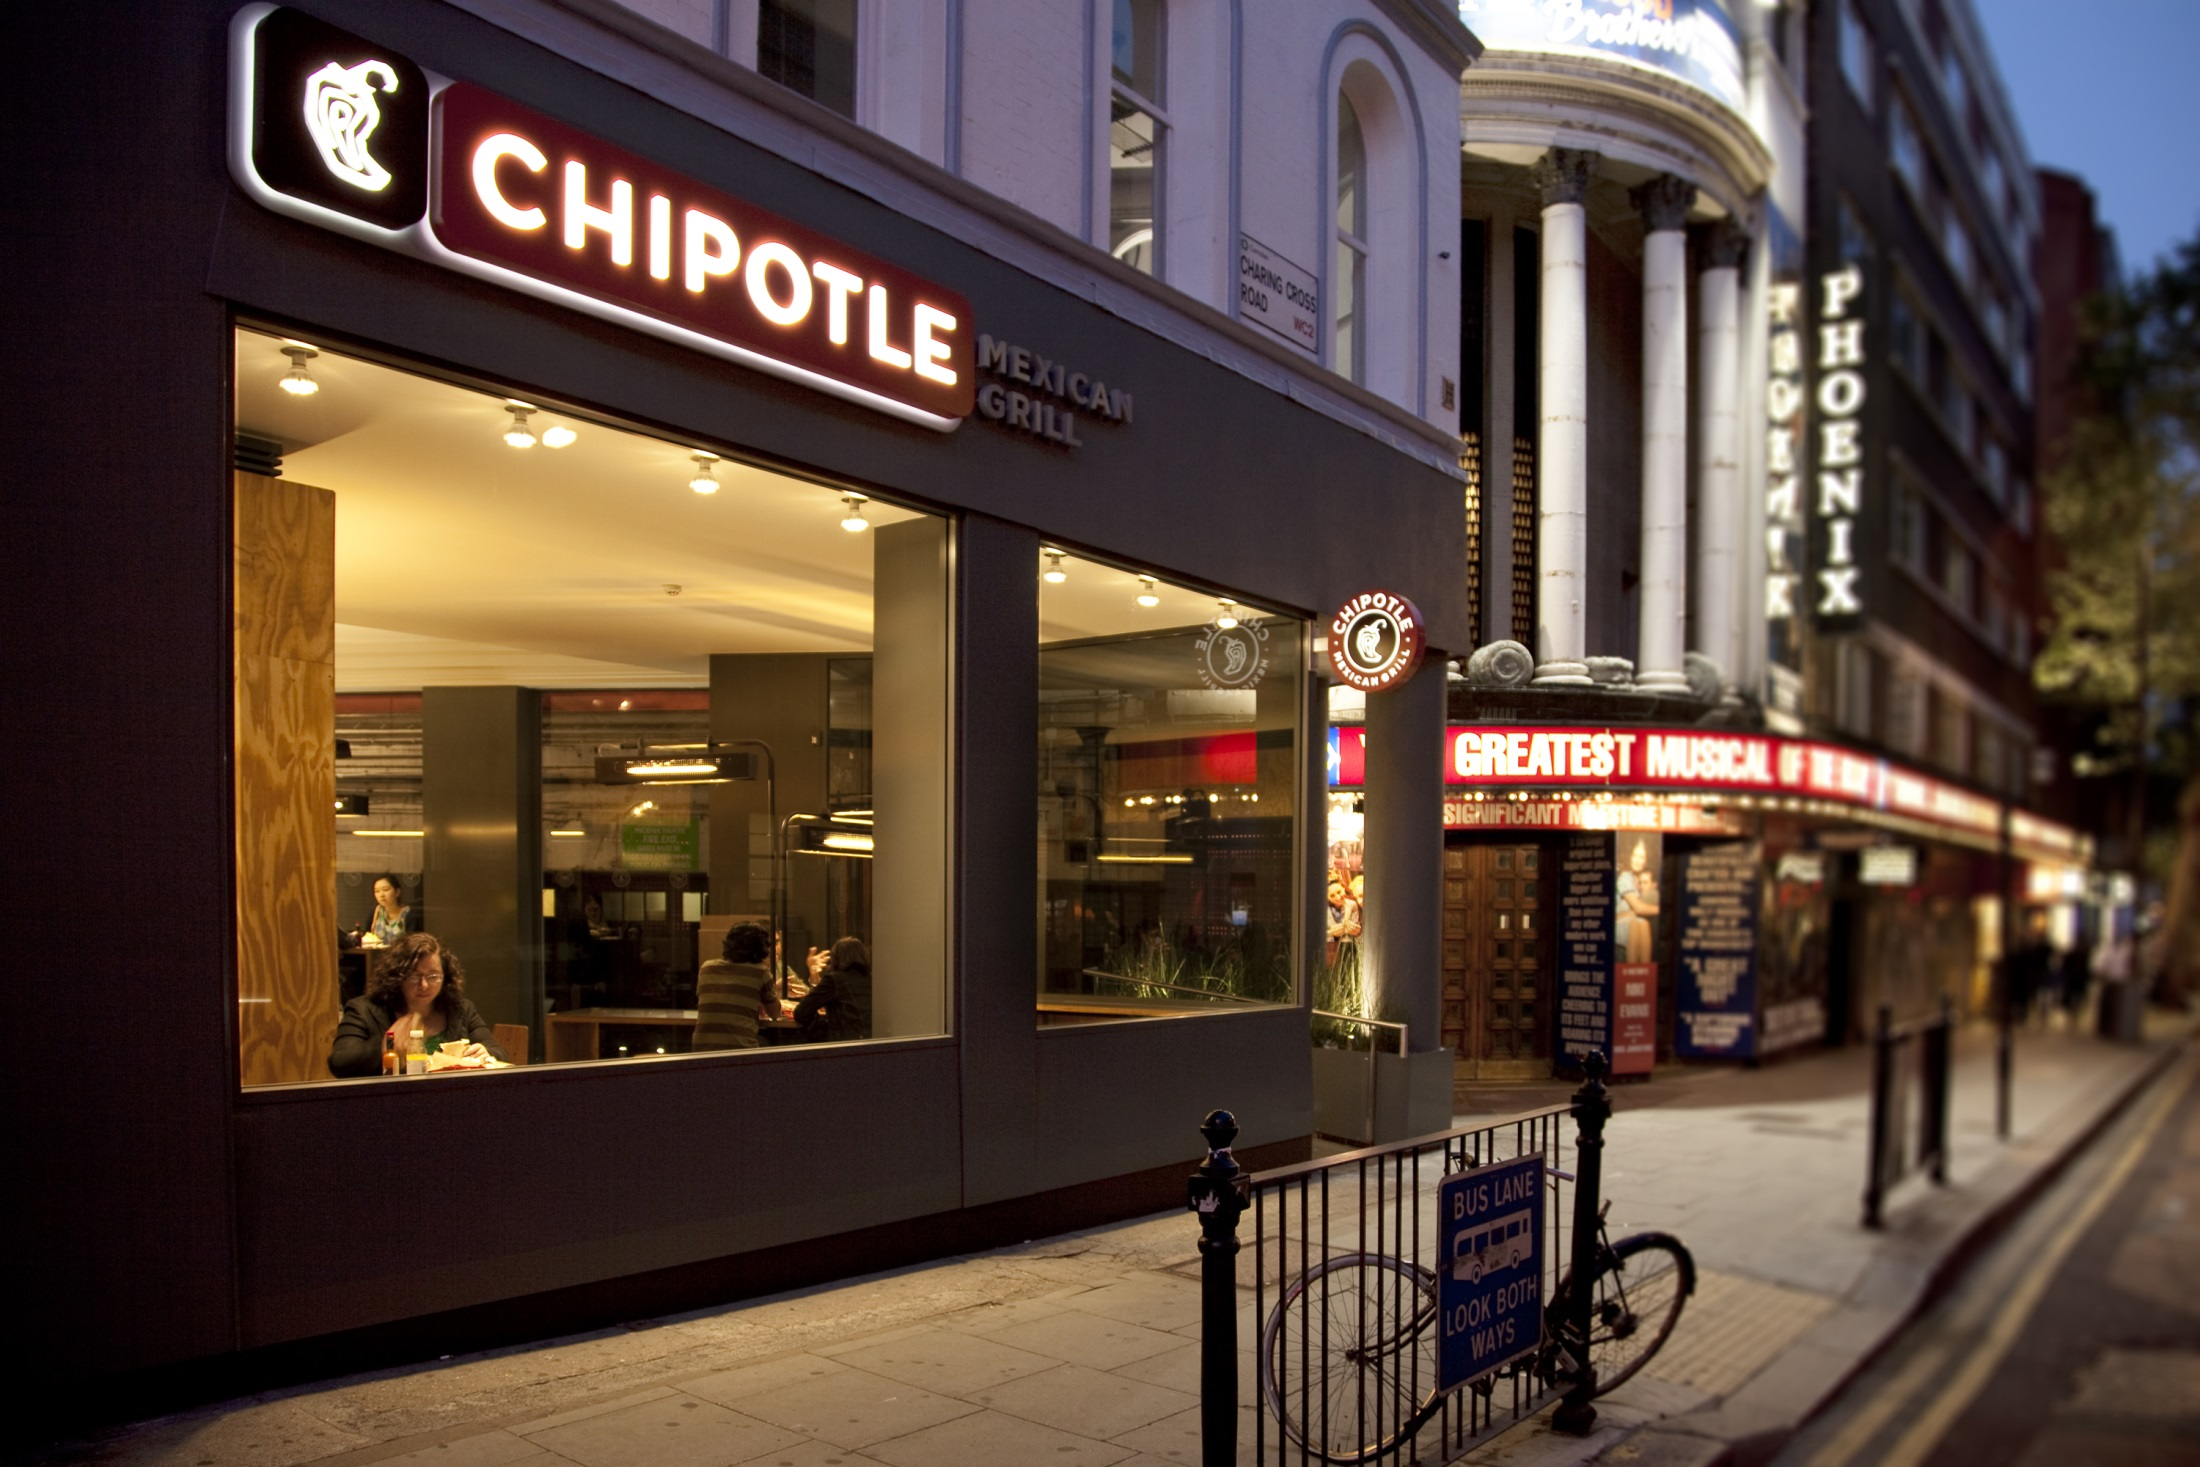 Chipotle was born of the radical belief that there is a connection between how food is raised and prepared and how it tastes